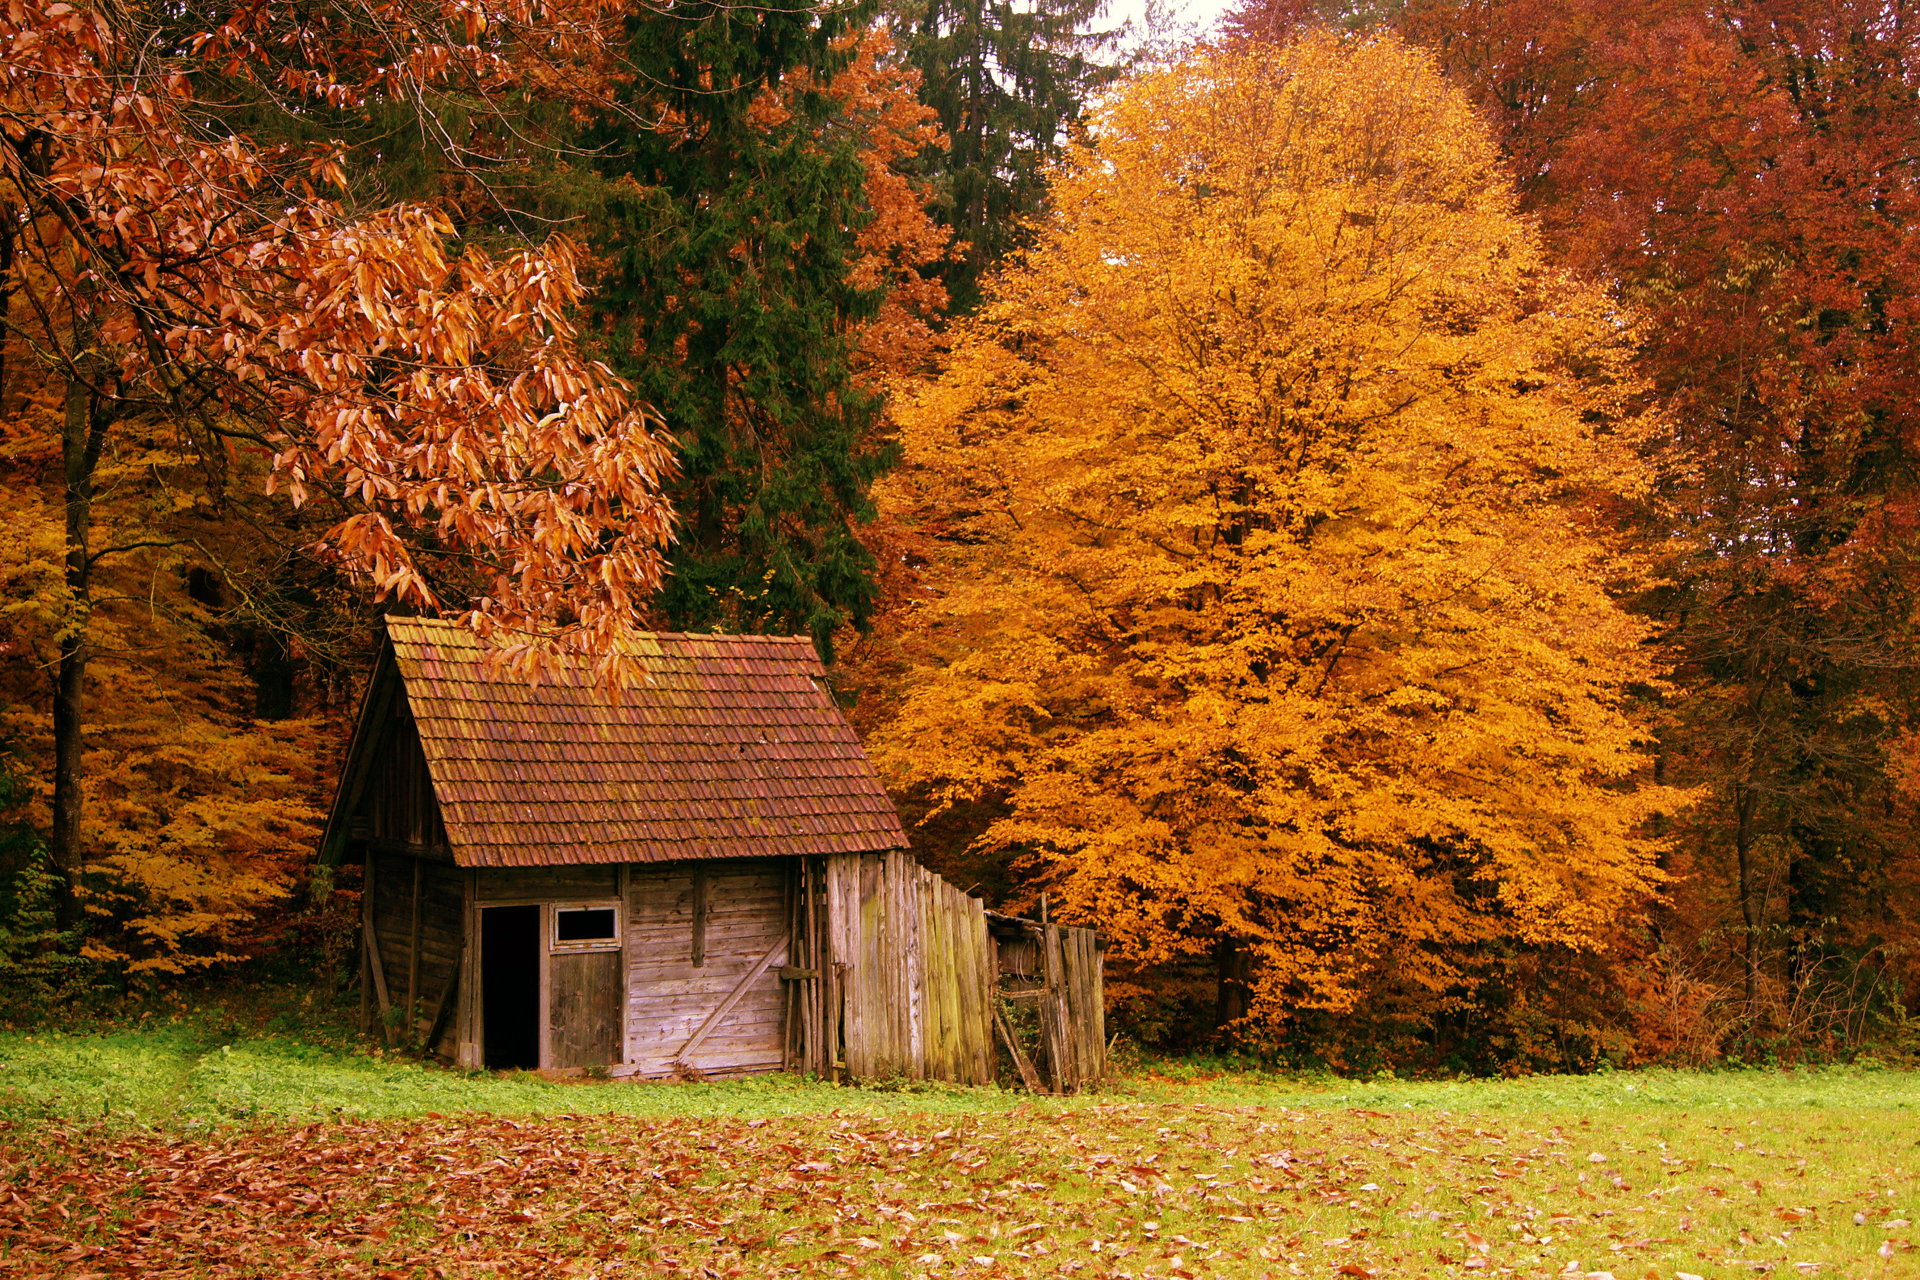 autumn cabin wallpaper desktop - photo #8